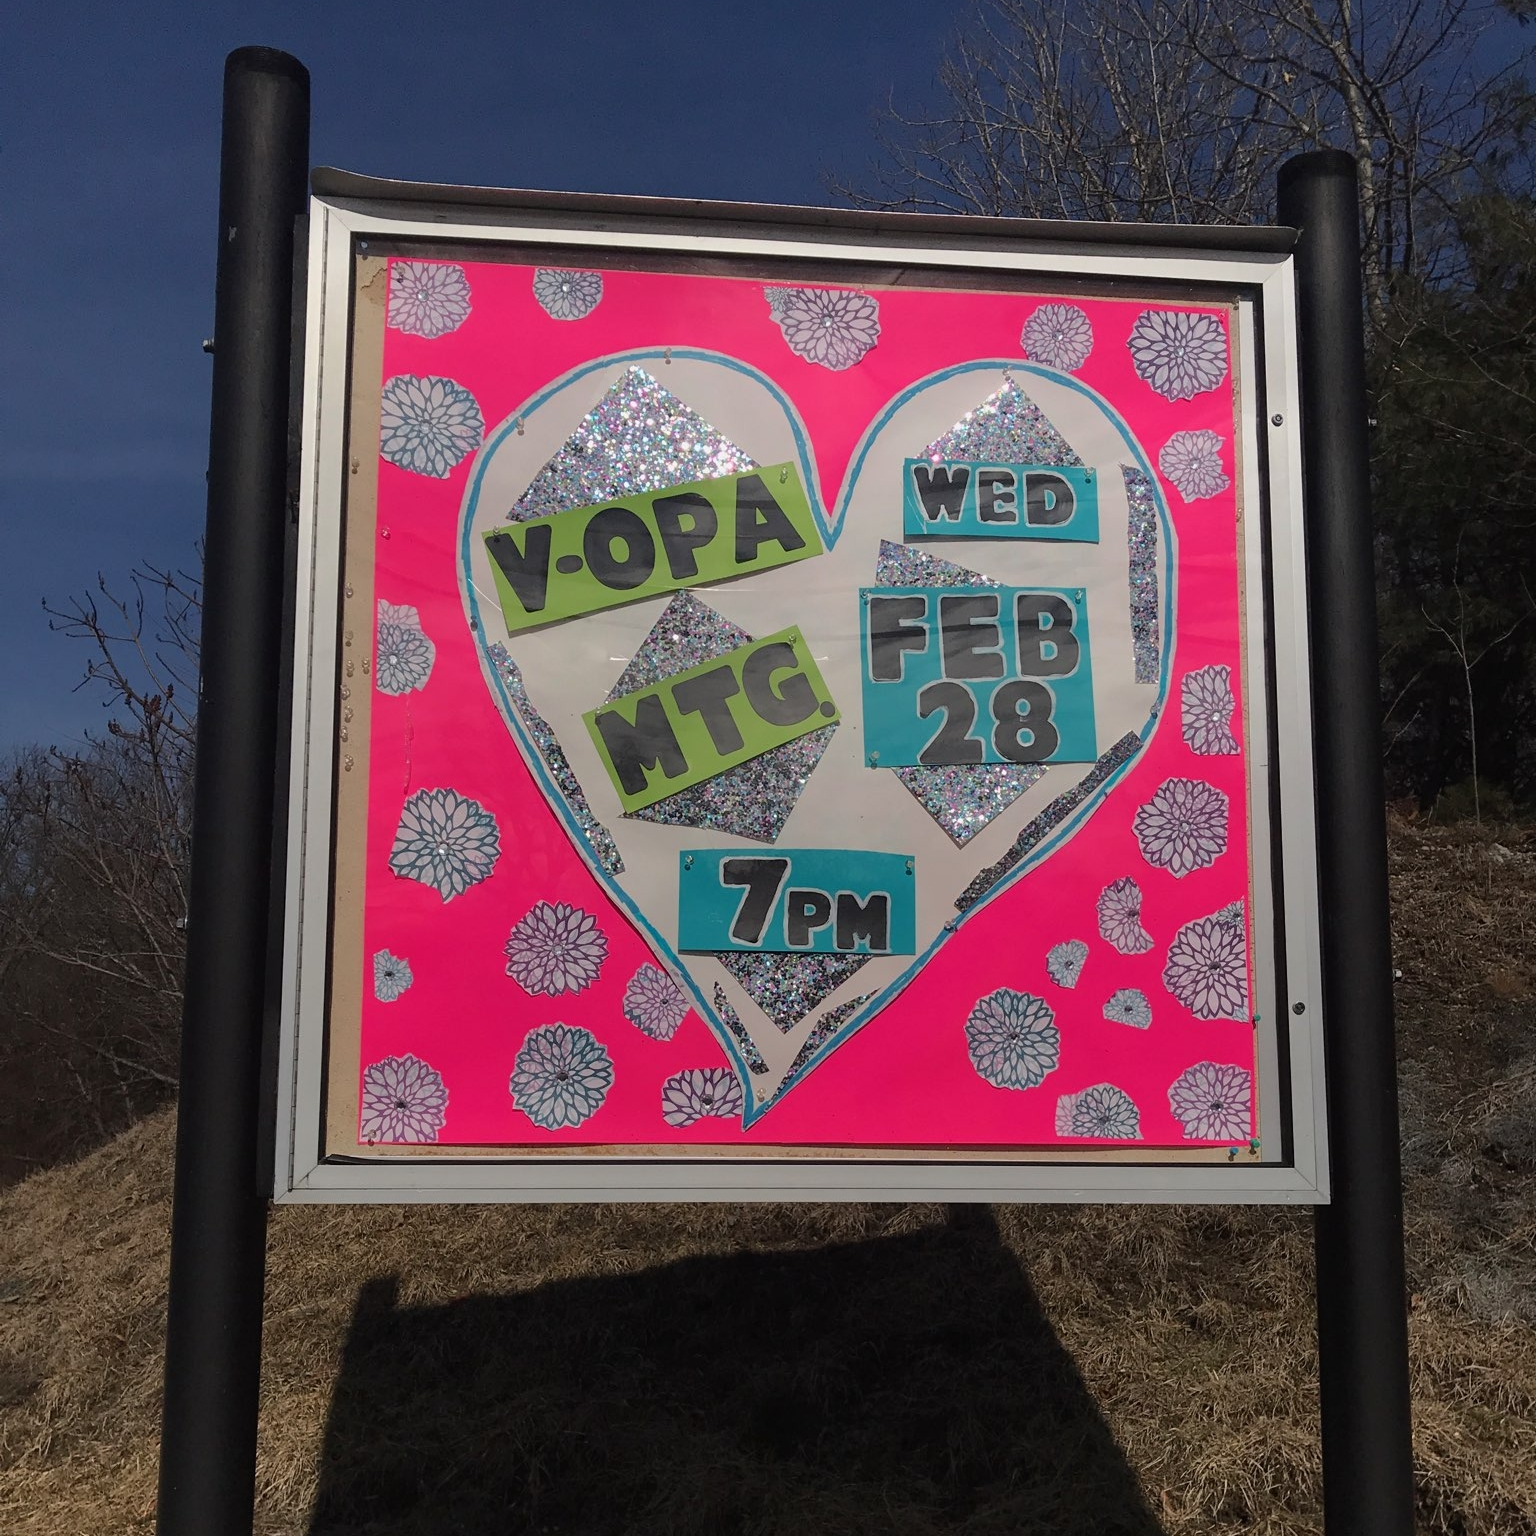 V-OPA Meeting and Minutes - V-OPA gatherings usually fall on the first Monday of the month and alternate between evening and morning gathering times. Please click on the hyperlinks below to see the minutes from each meeting.